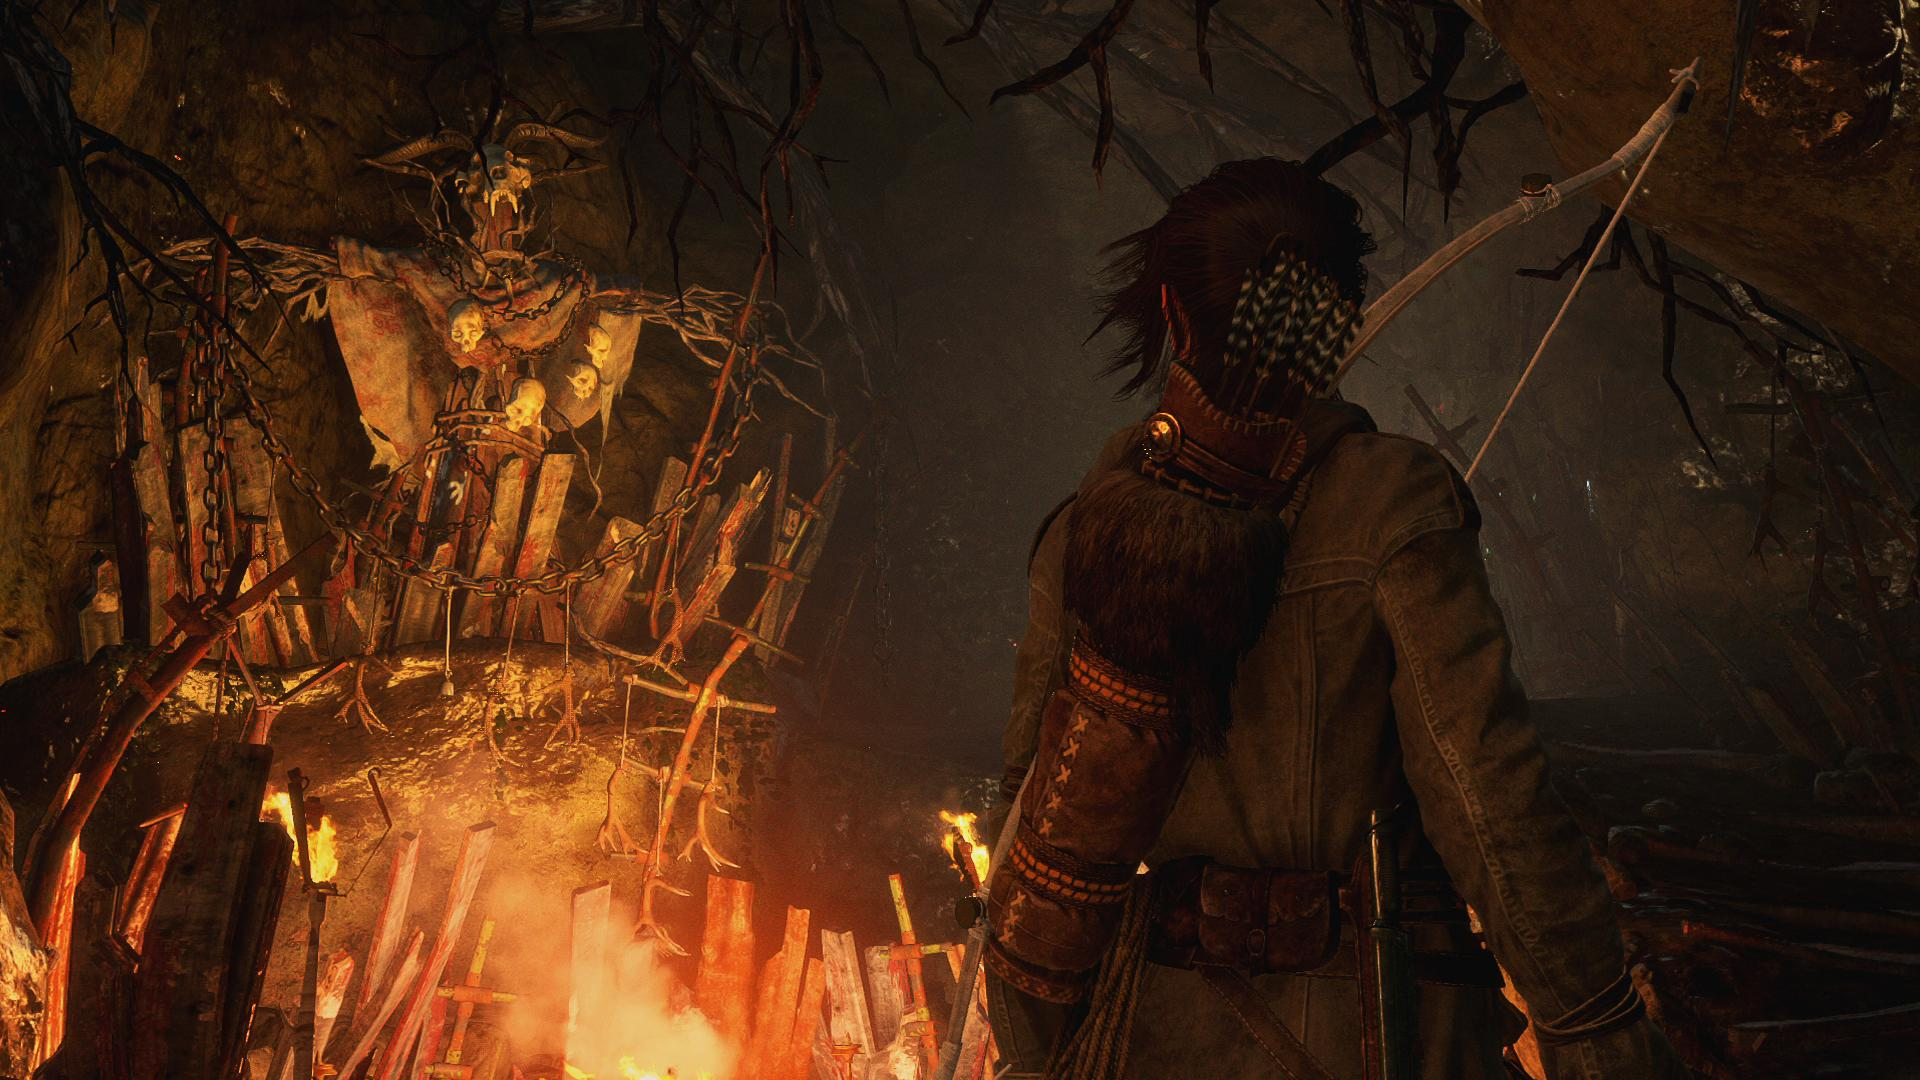 Rise of the Tomb Raider - Baba Yaga: The Temple of the Witch #1